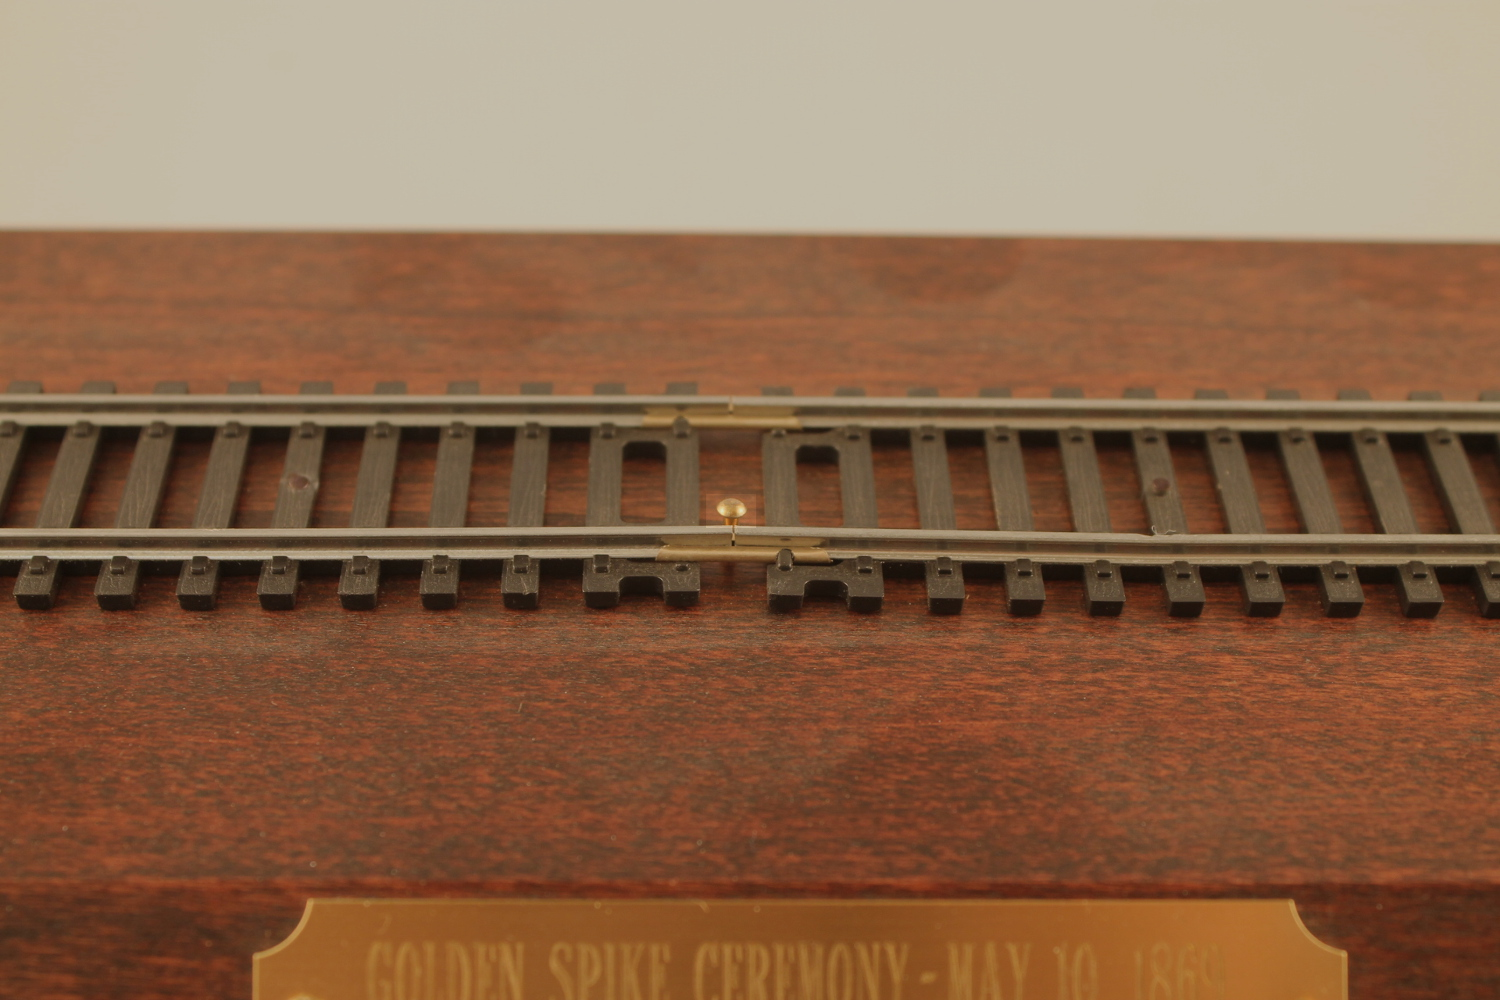 Golden Spike/Transcontinental Display Track HO Scale - Click Image to Close